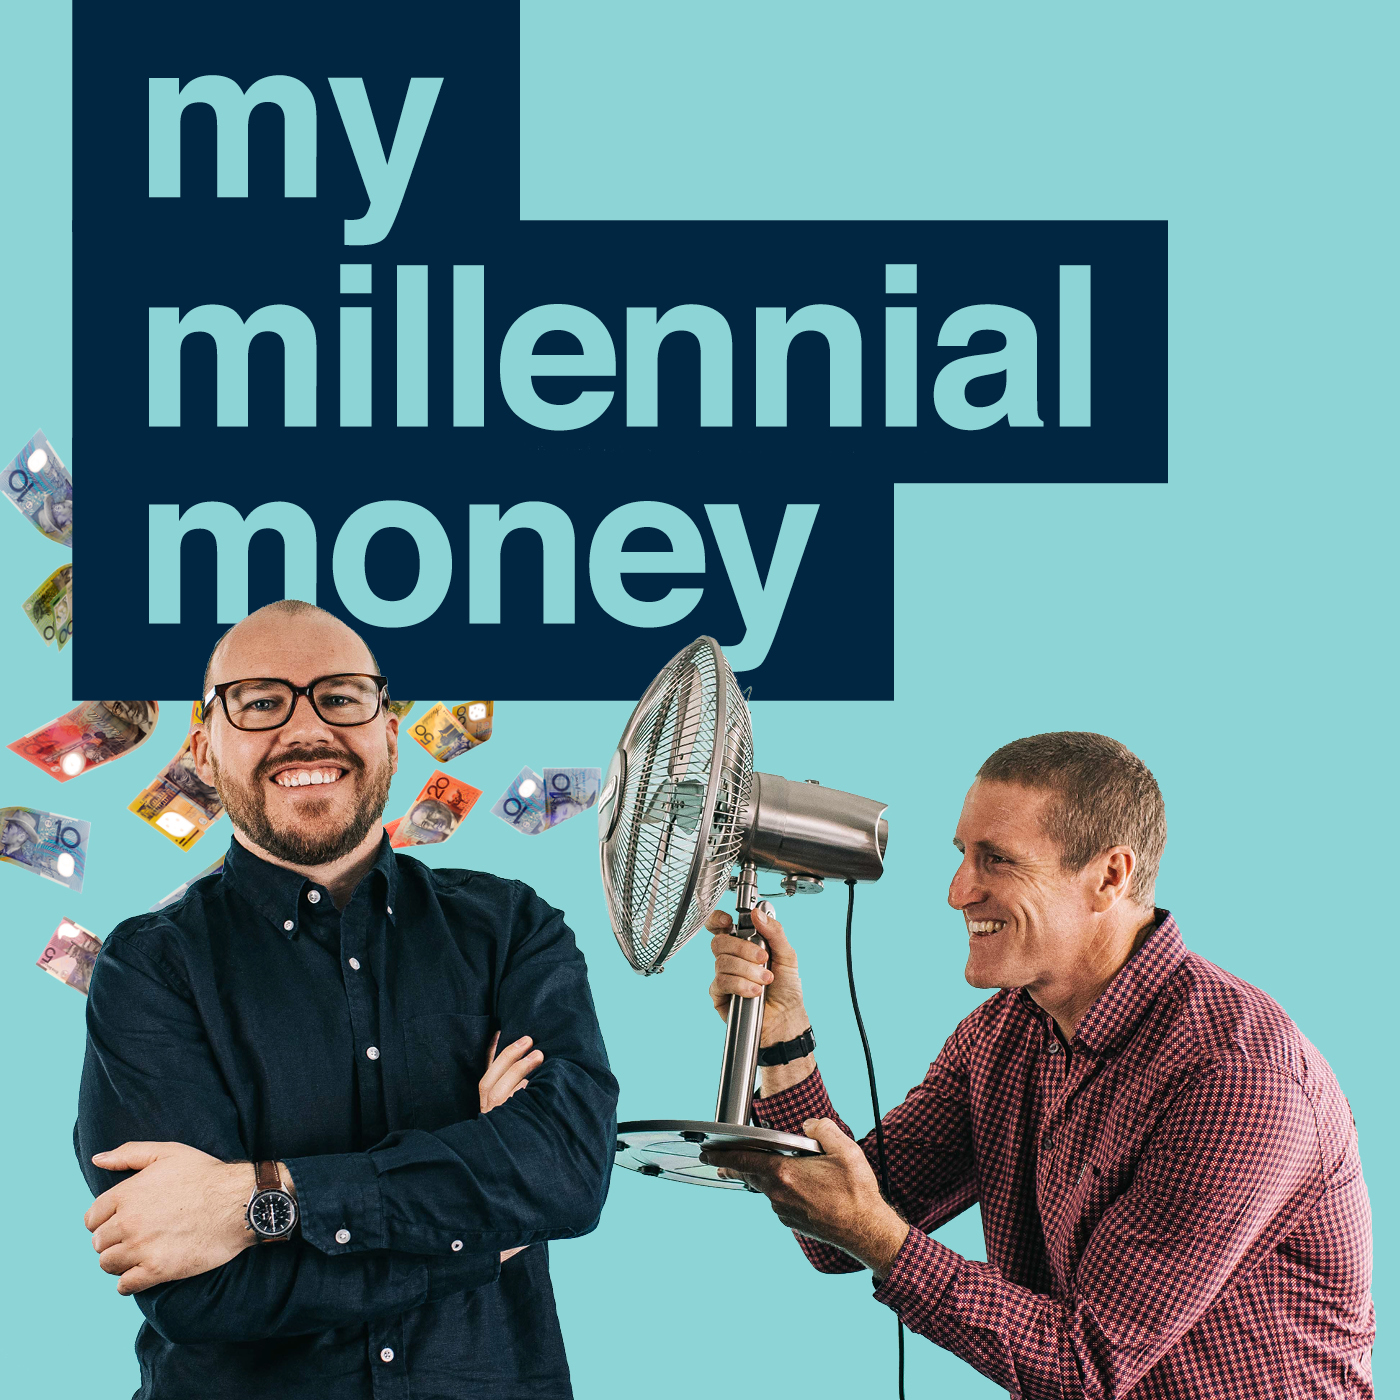 my millennial money